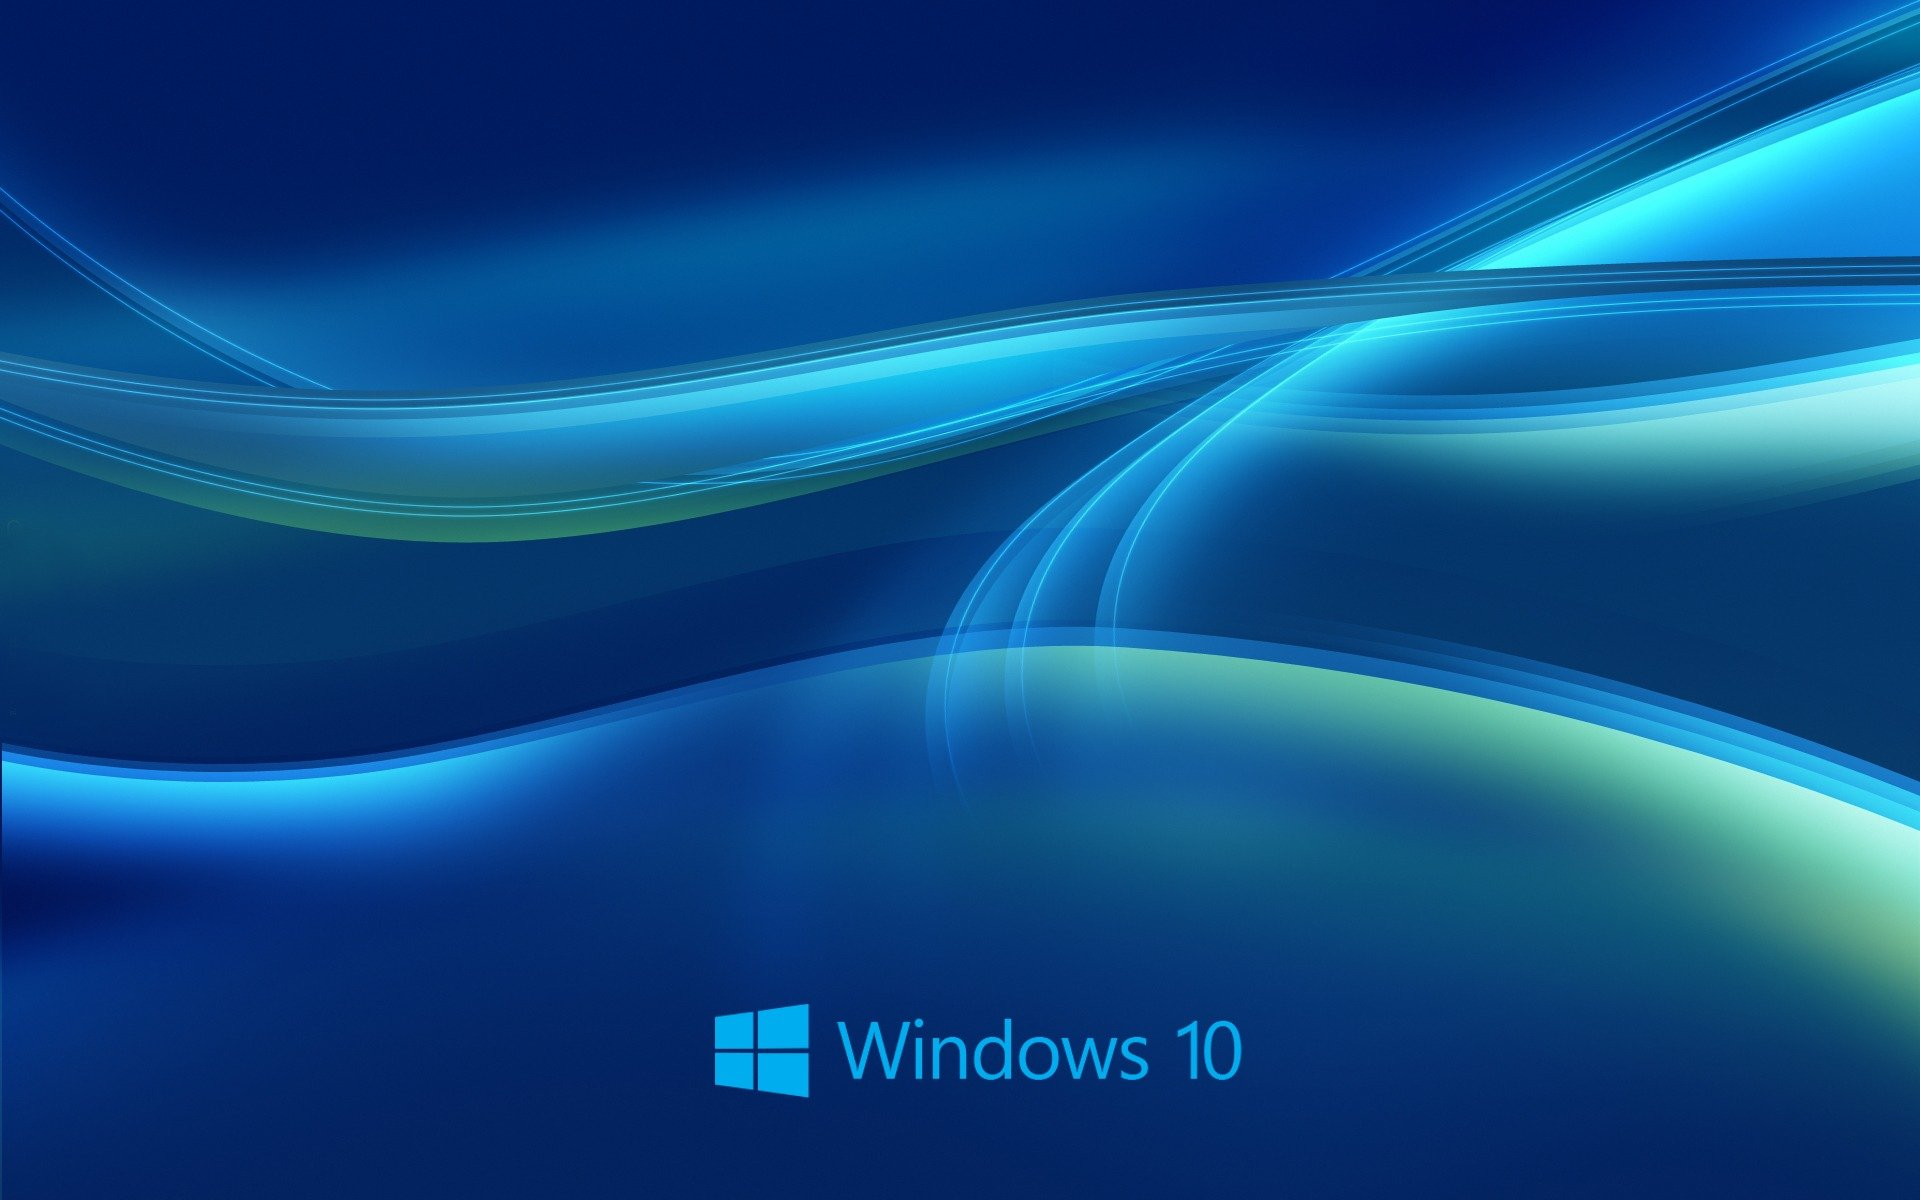 Microsoft Windows 10 OS Desktop Wallpaper 08   1920x1200 wallpaper 1920x1200